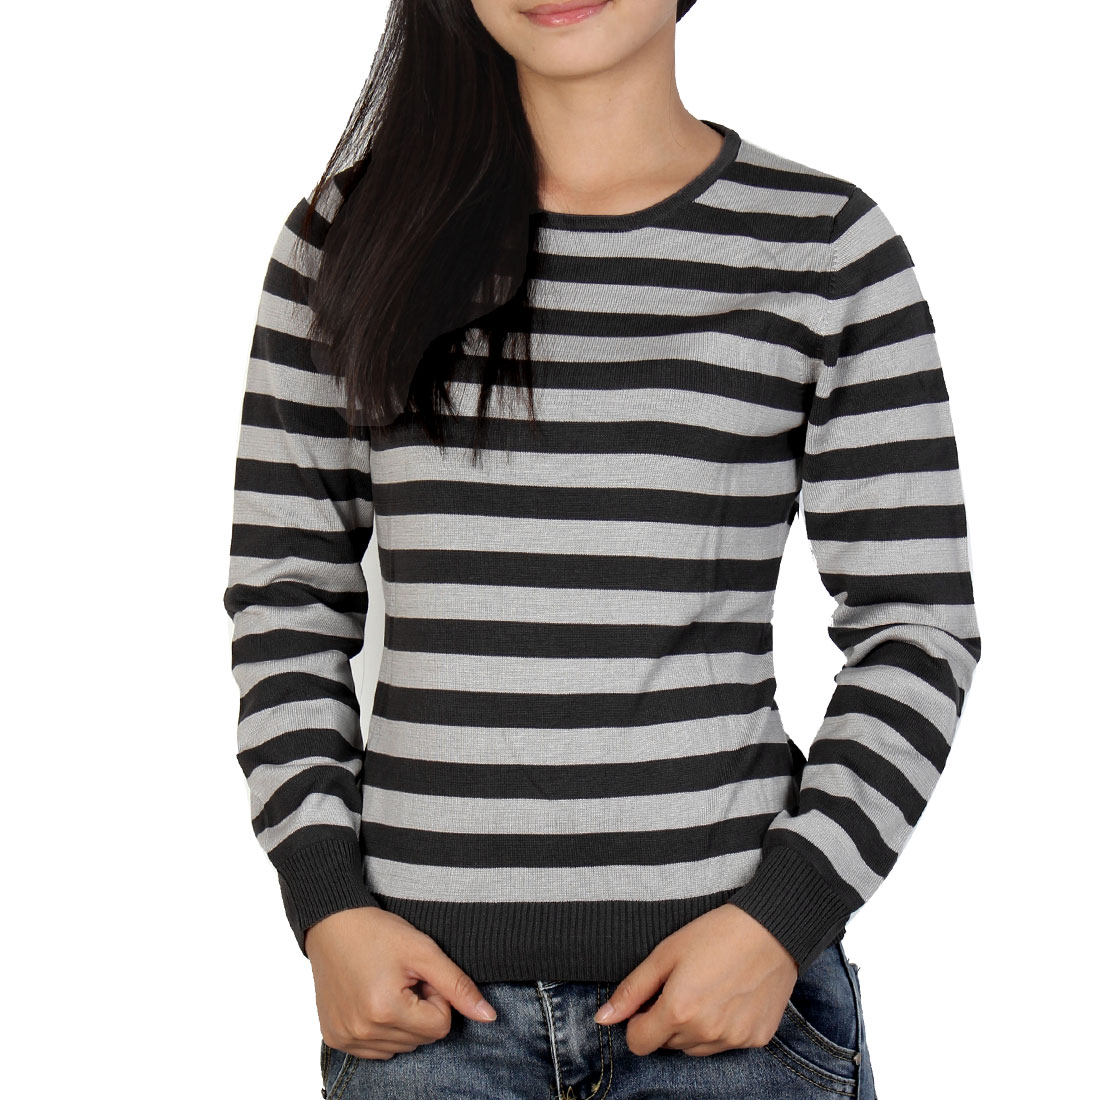 Woman Pullover Stripes Crew Neck Casual Soft Sweater Two Tone Gray XS